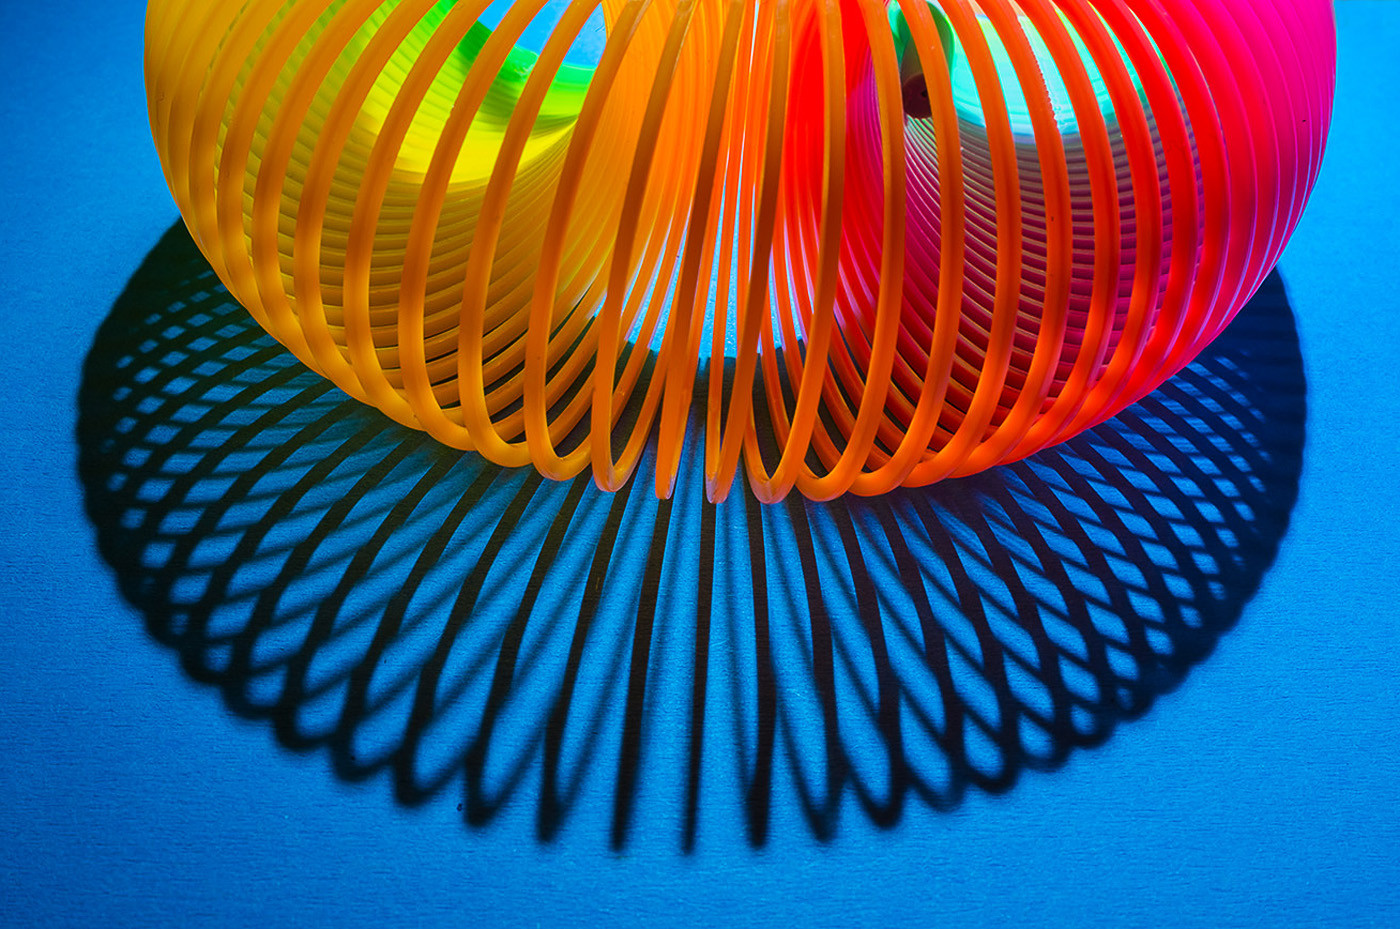 3rd= SLINKY SHADOWS by Les Welton.